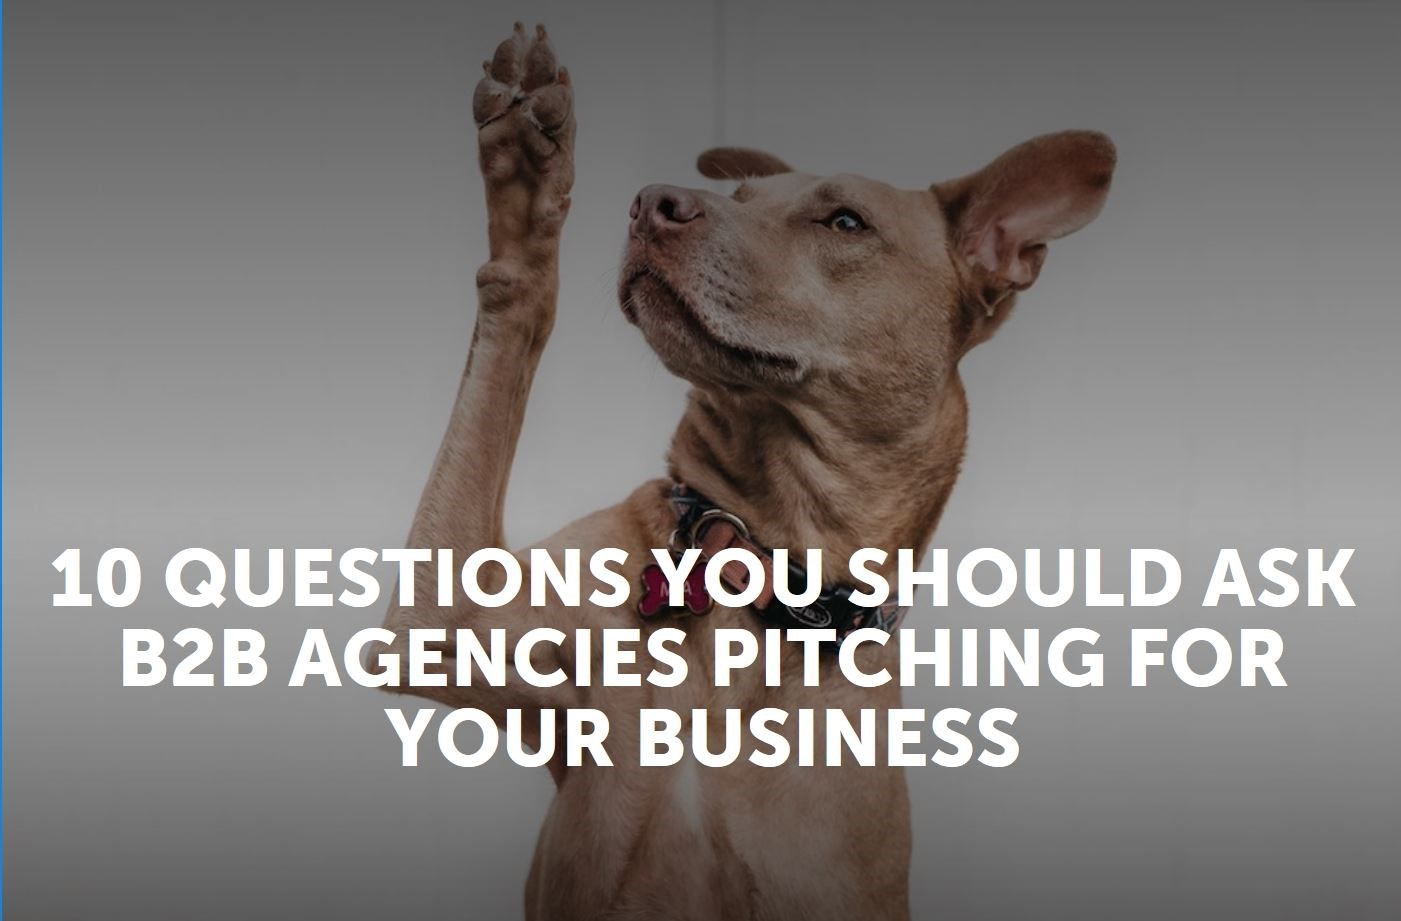 10 questions you should ask B2B agencies pitching for your business